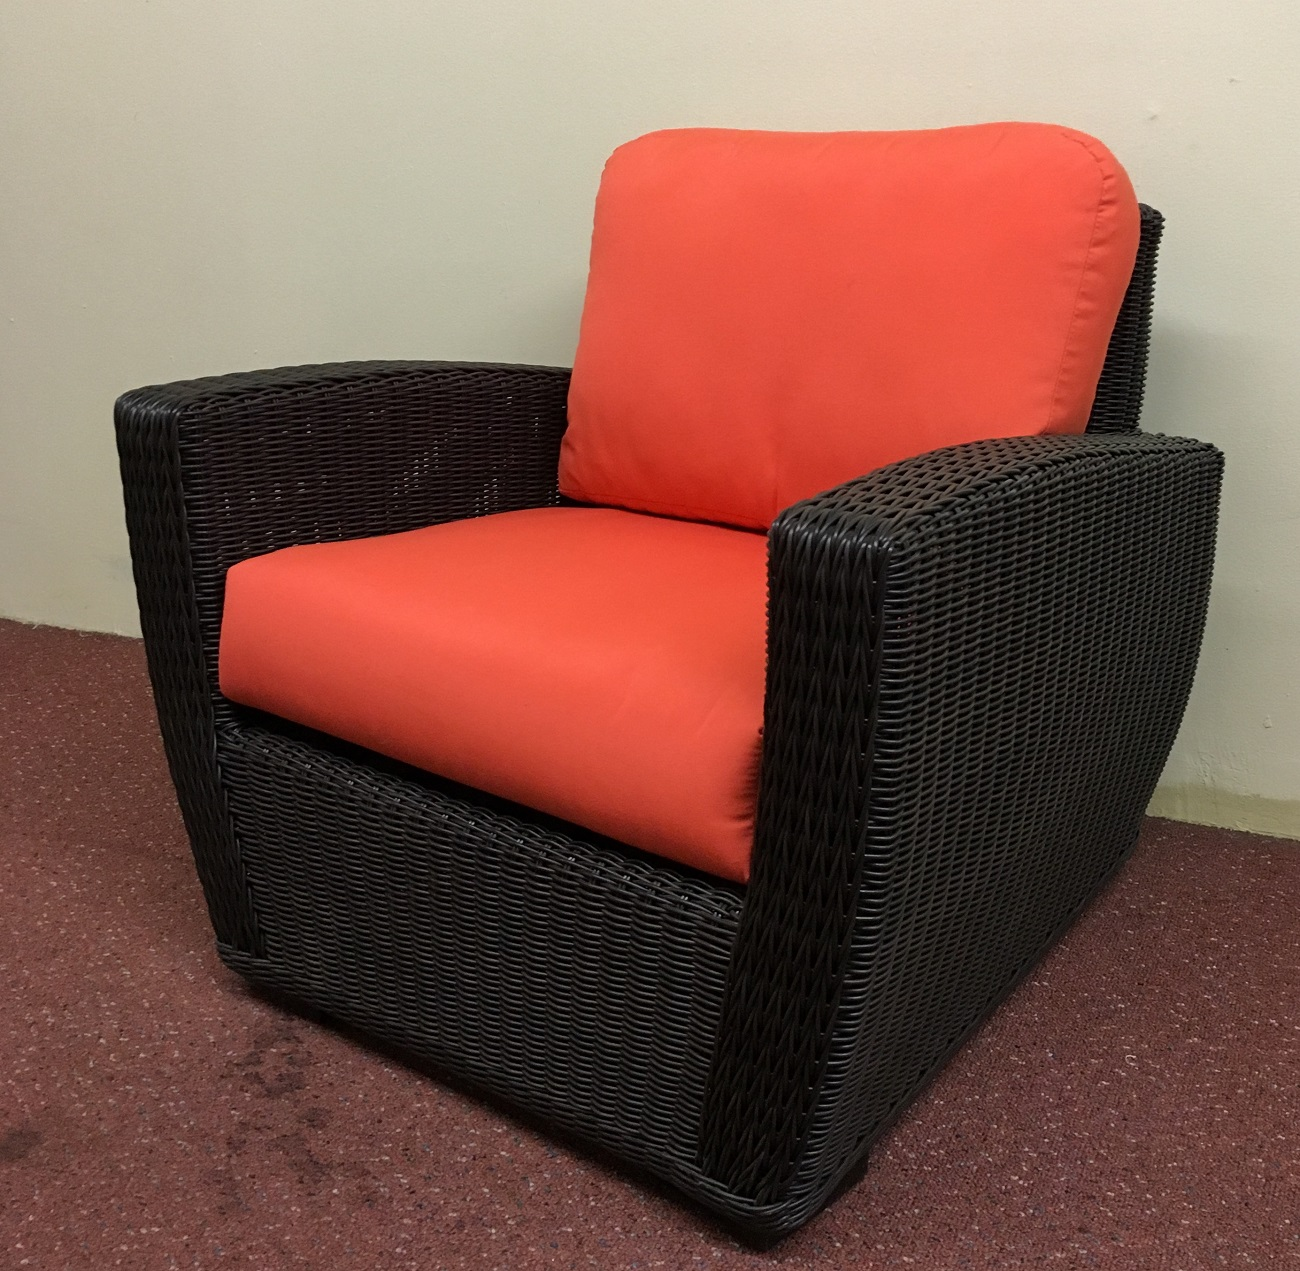 Cheap Wicker Chair: All Weather Wicker Chair